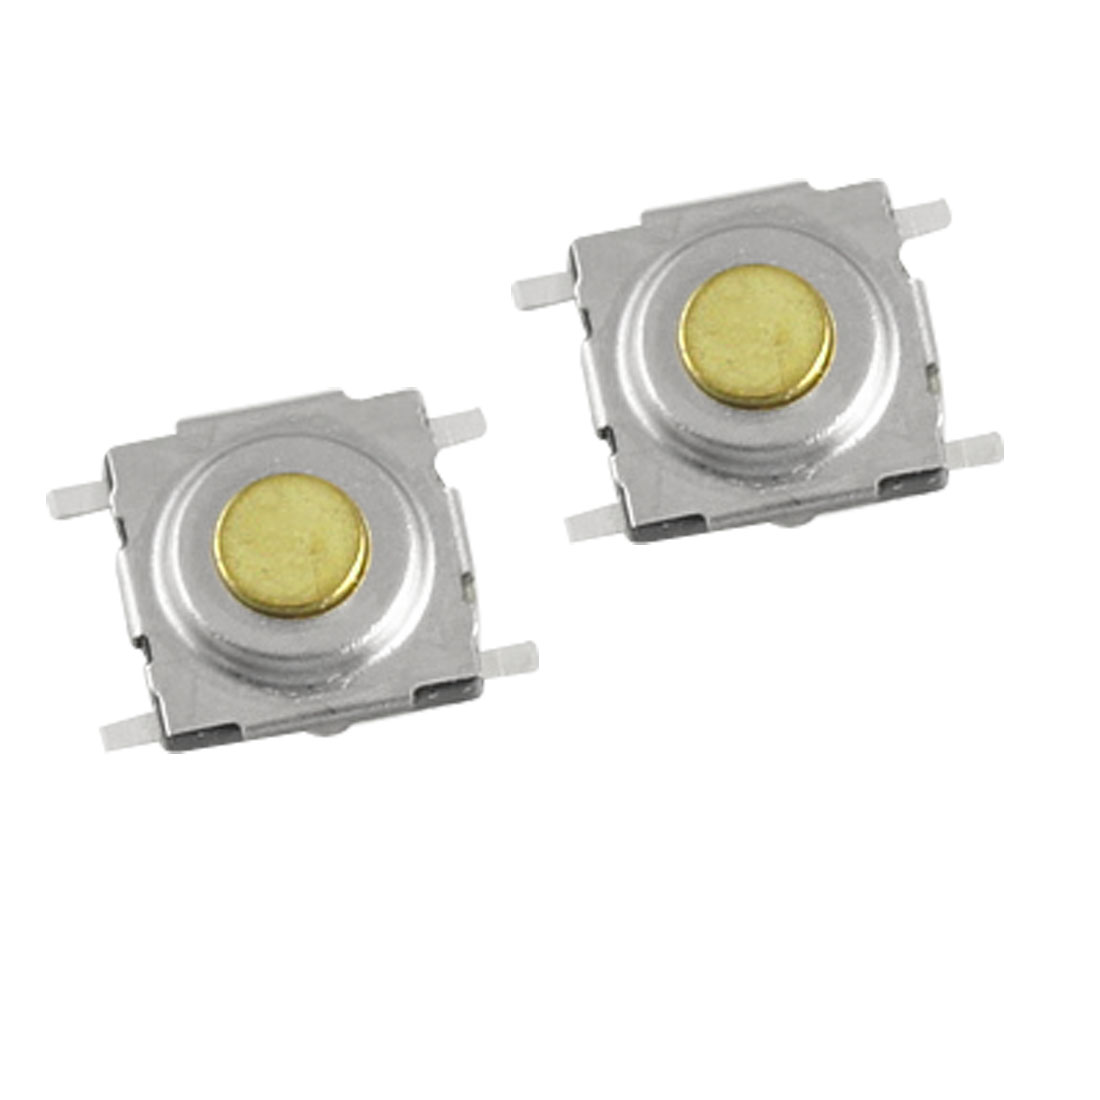 10 Pcs SMD SMT Ultrathin Momentary Push Button Tact Switch 5 x 5 x 1.5mm